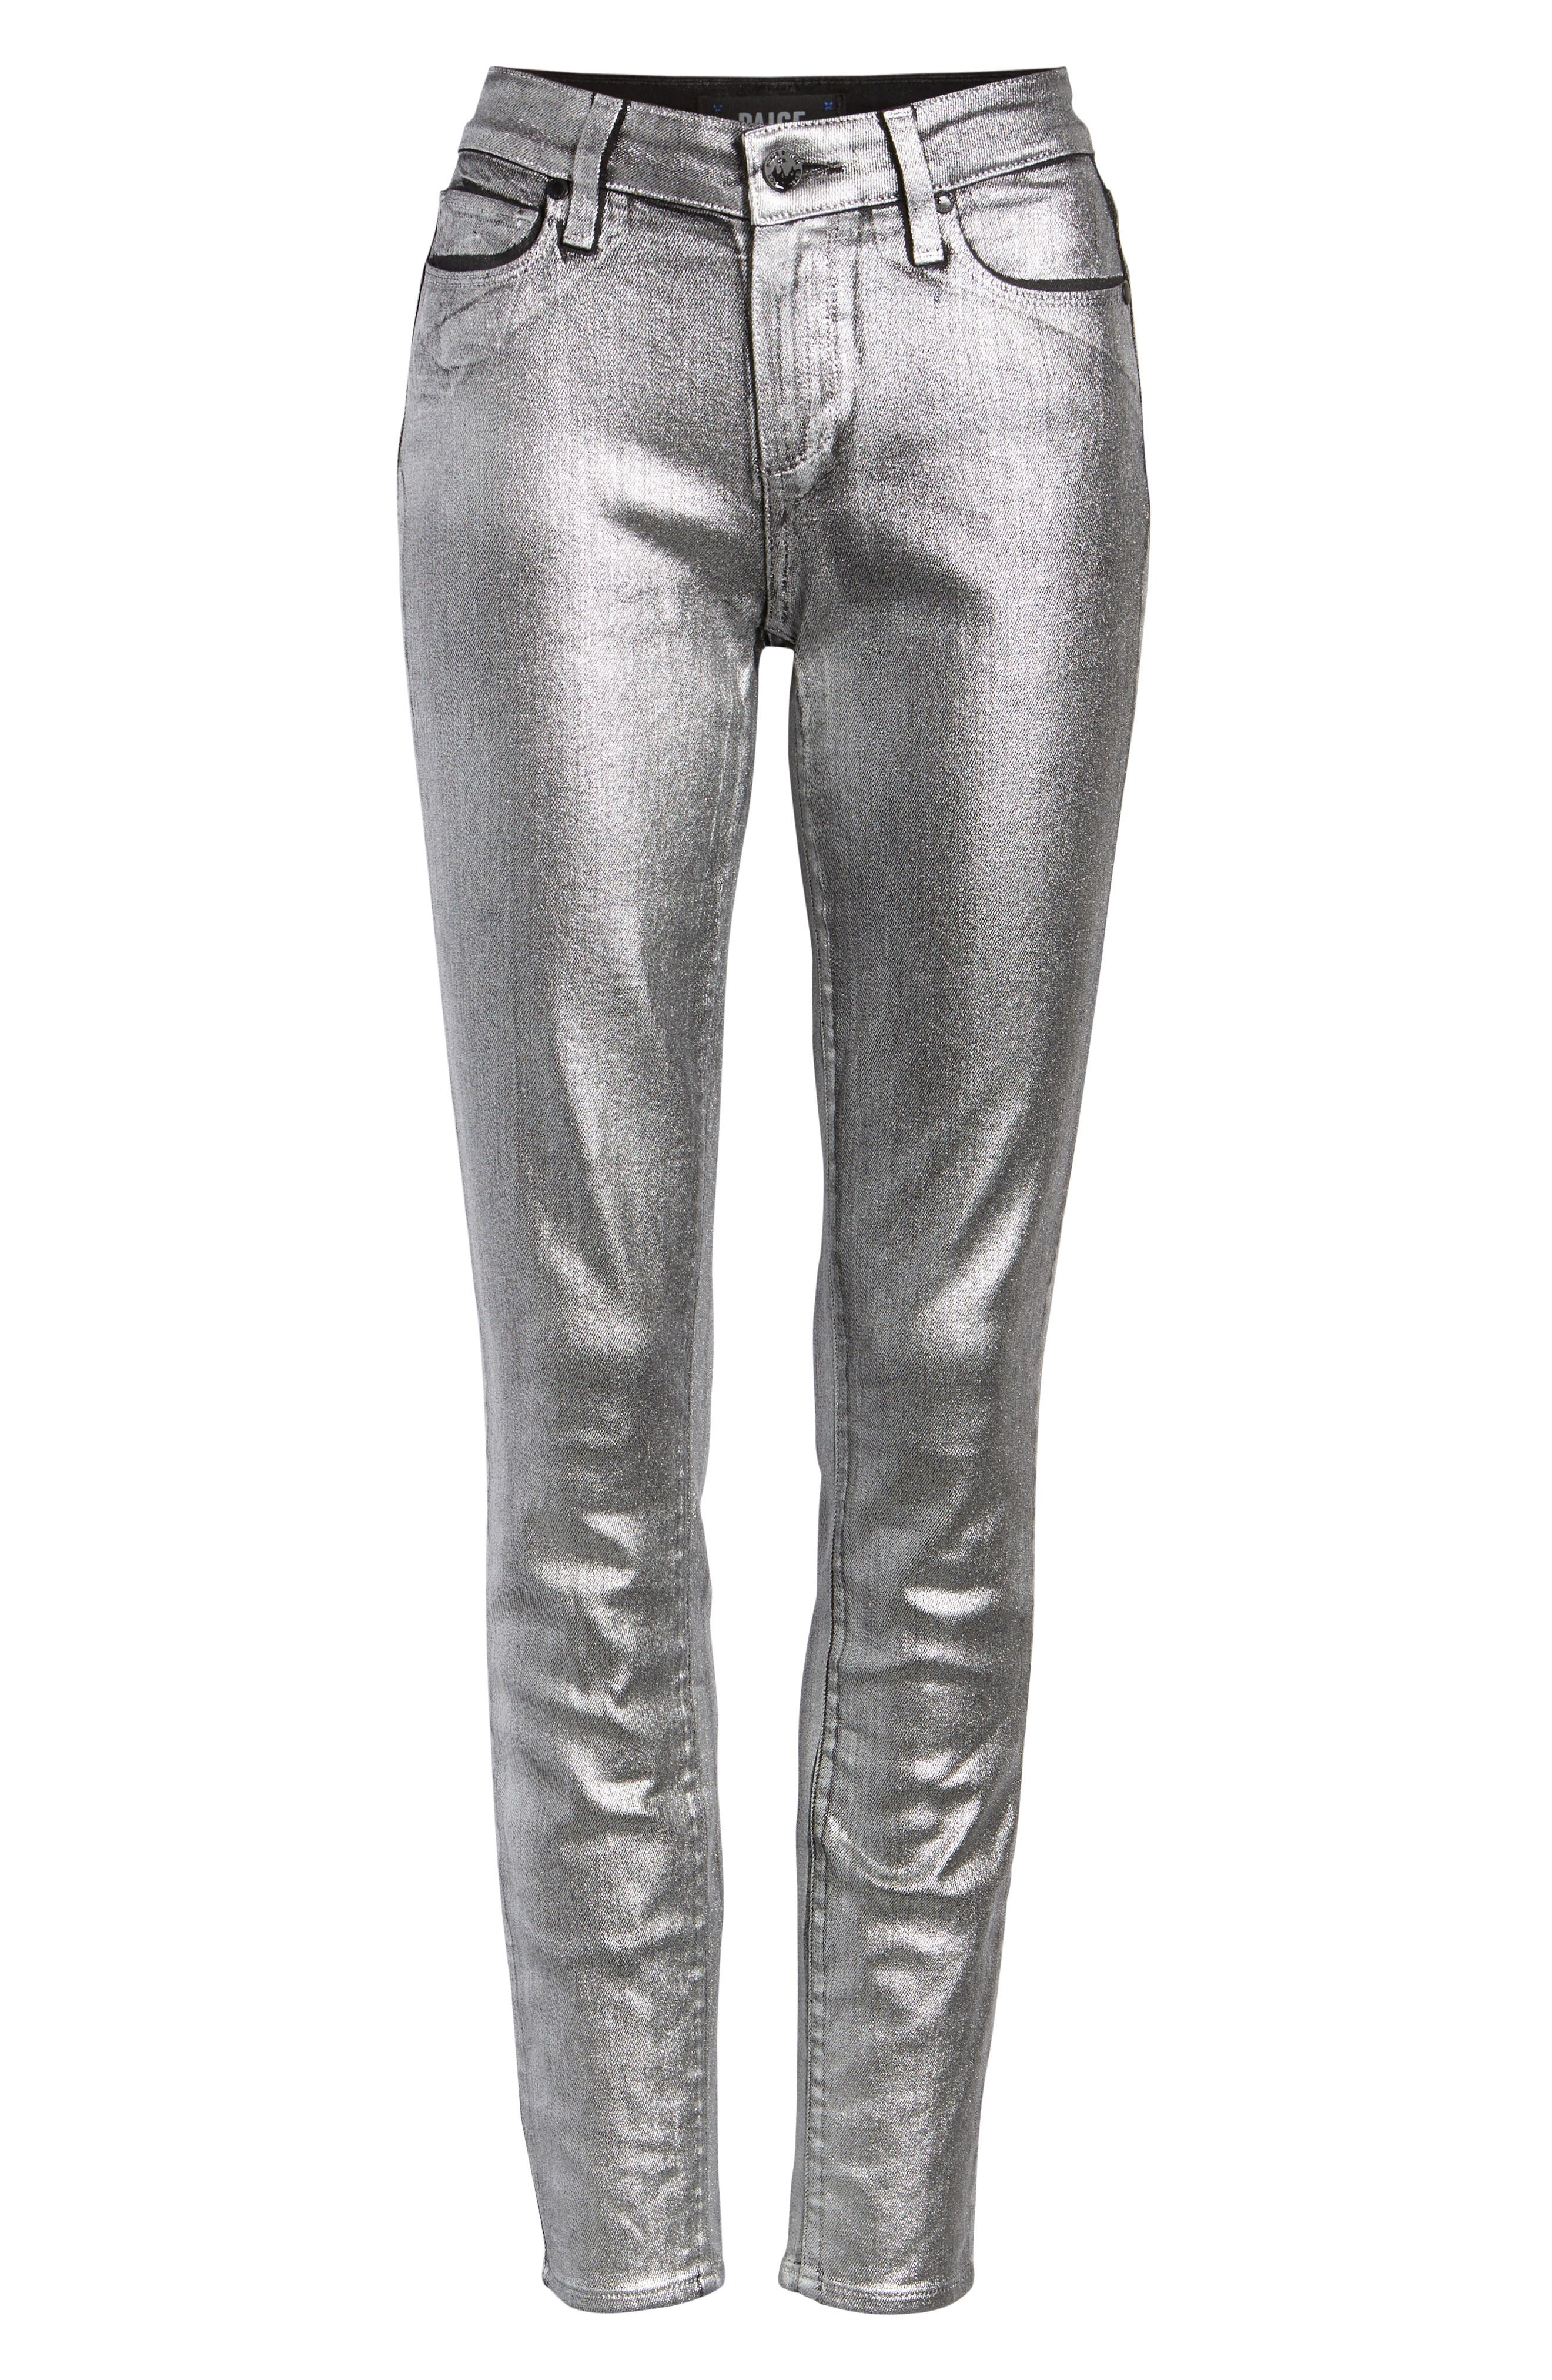 Verdugo Skinny Jeans,                             Alternate thumbnail 7, color,                             SILVER GALAXY COATING